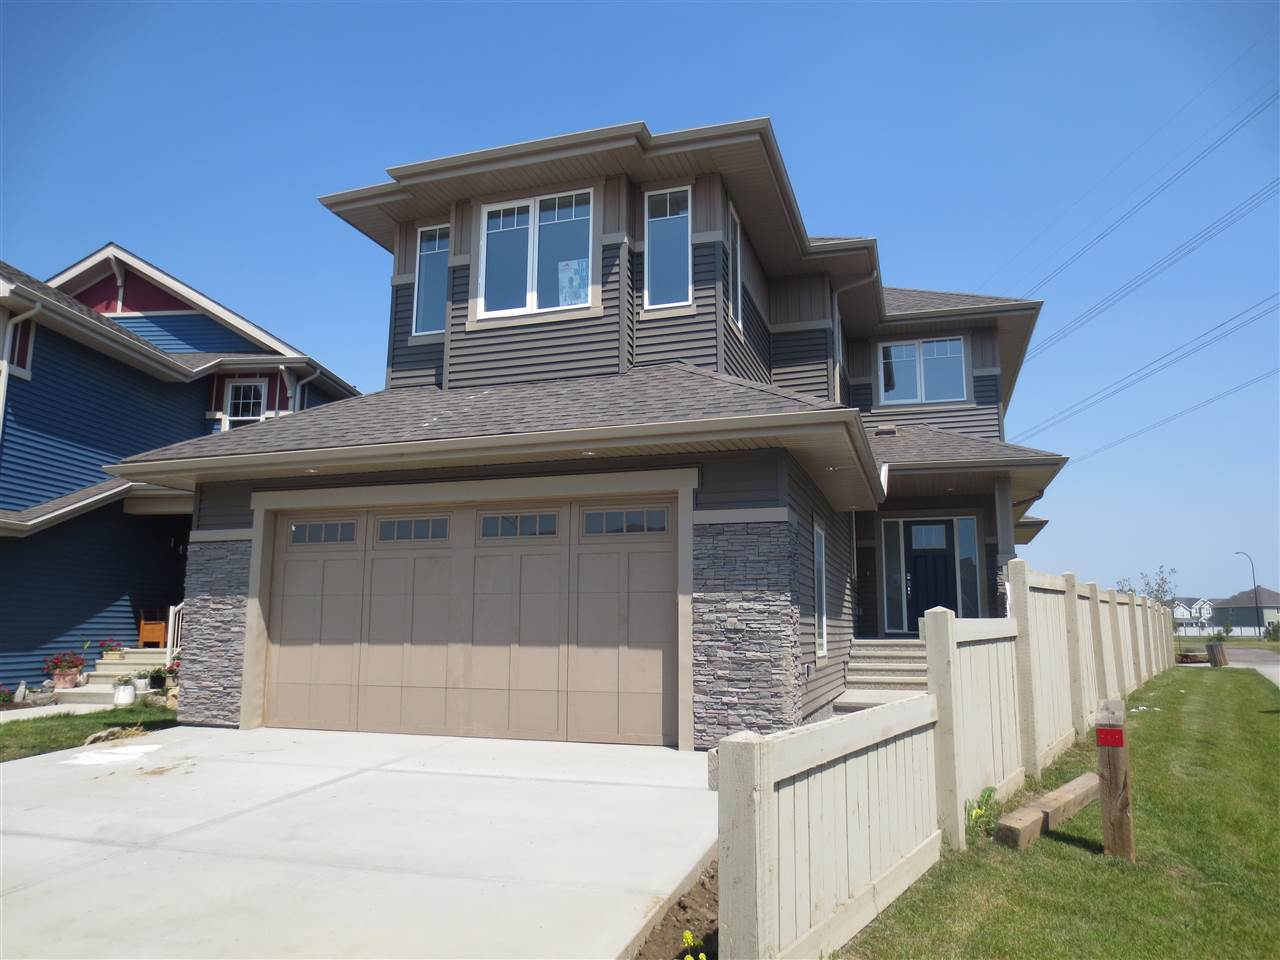 Main Photo: 4339 CRABAPPLE Crescent in Edmonton: Zone 53 House for sale : MLS® # E4073759